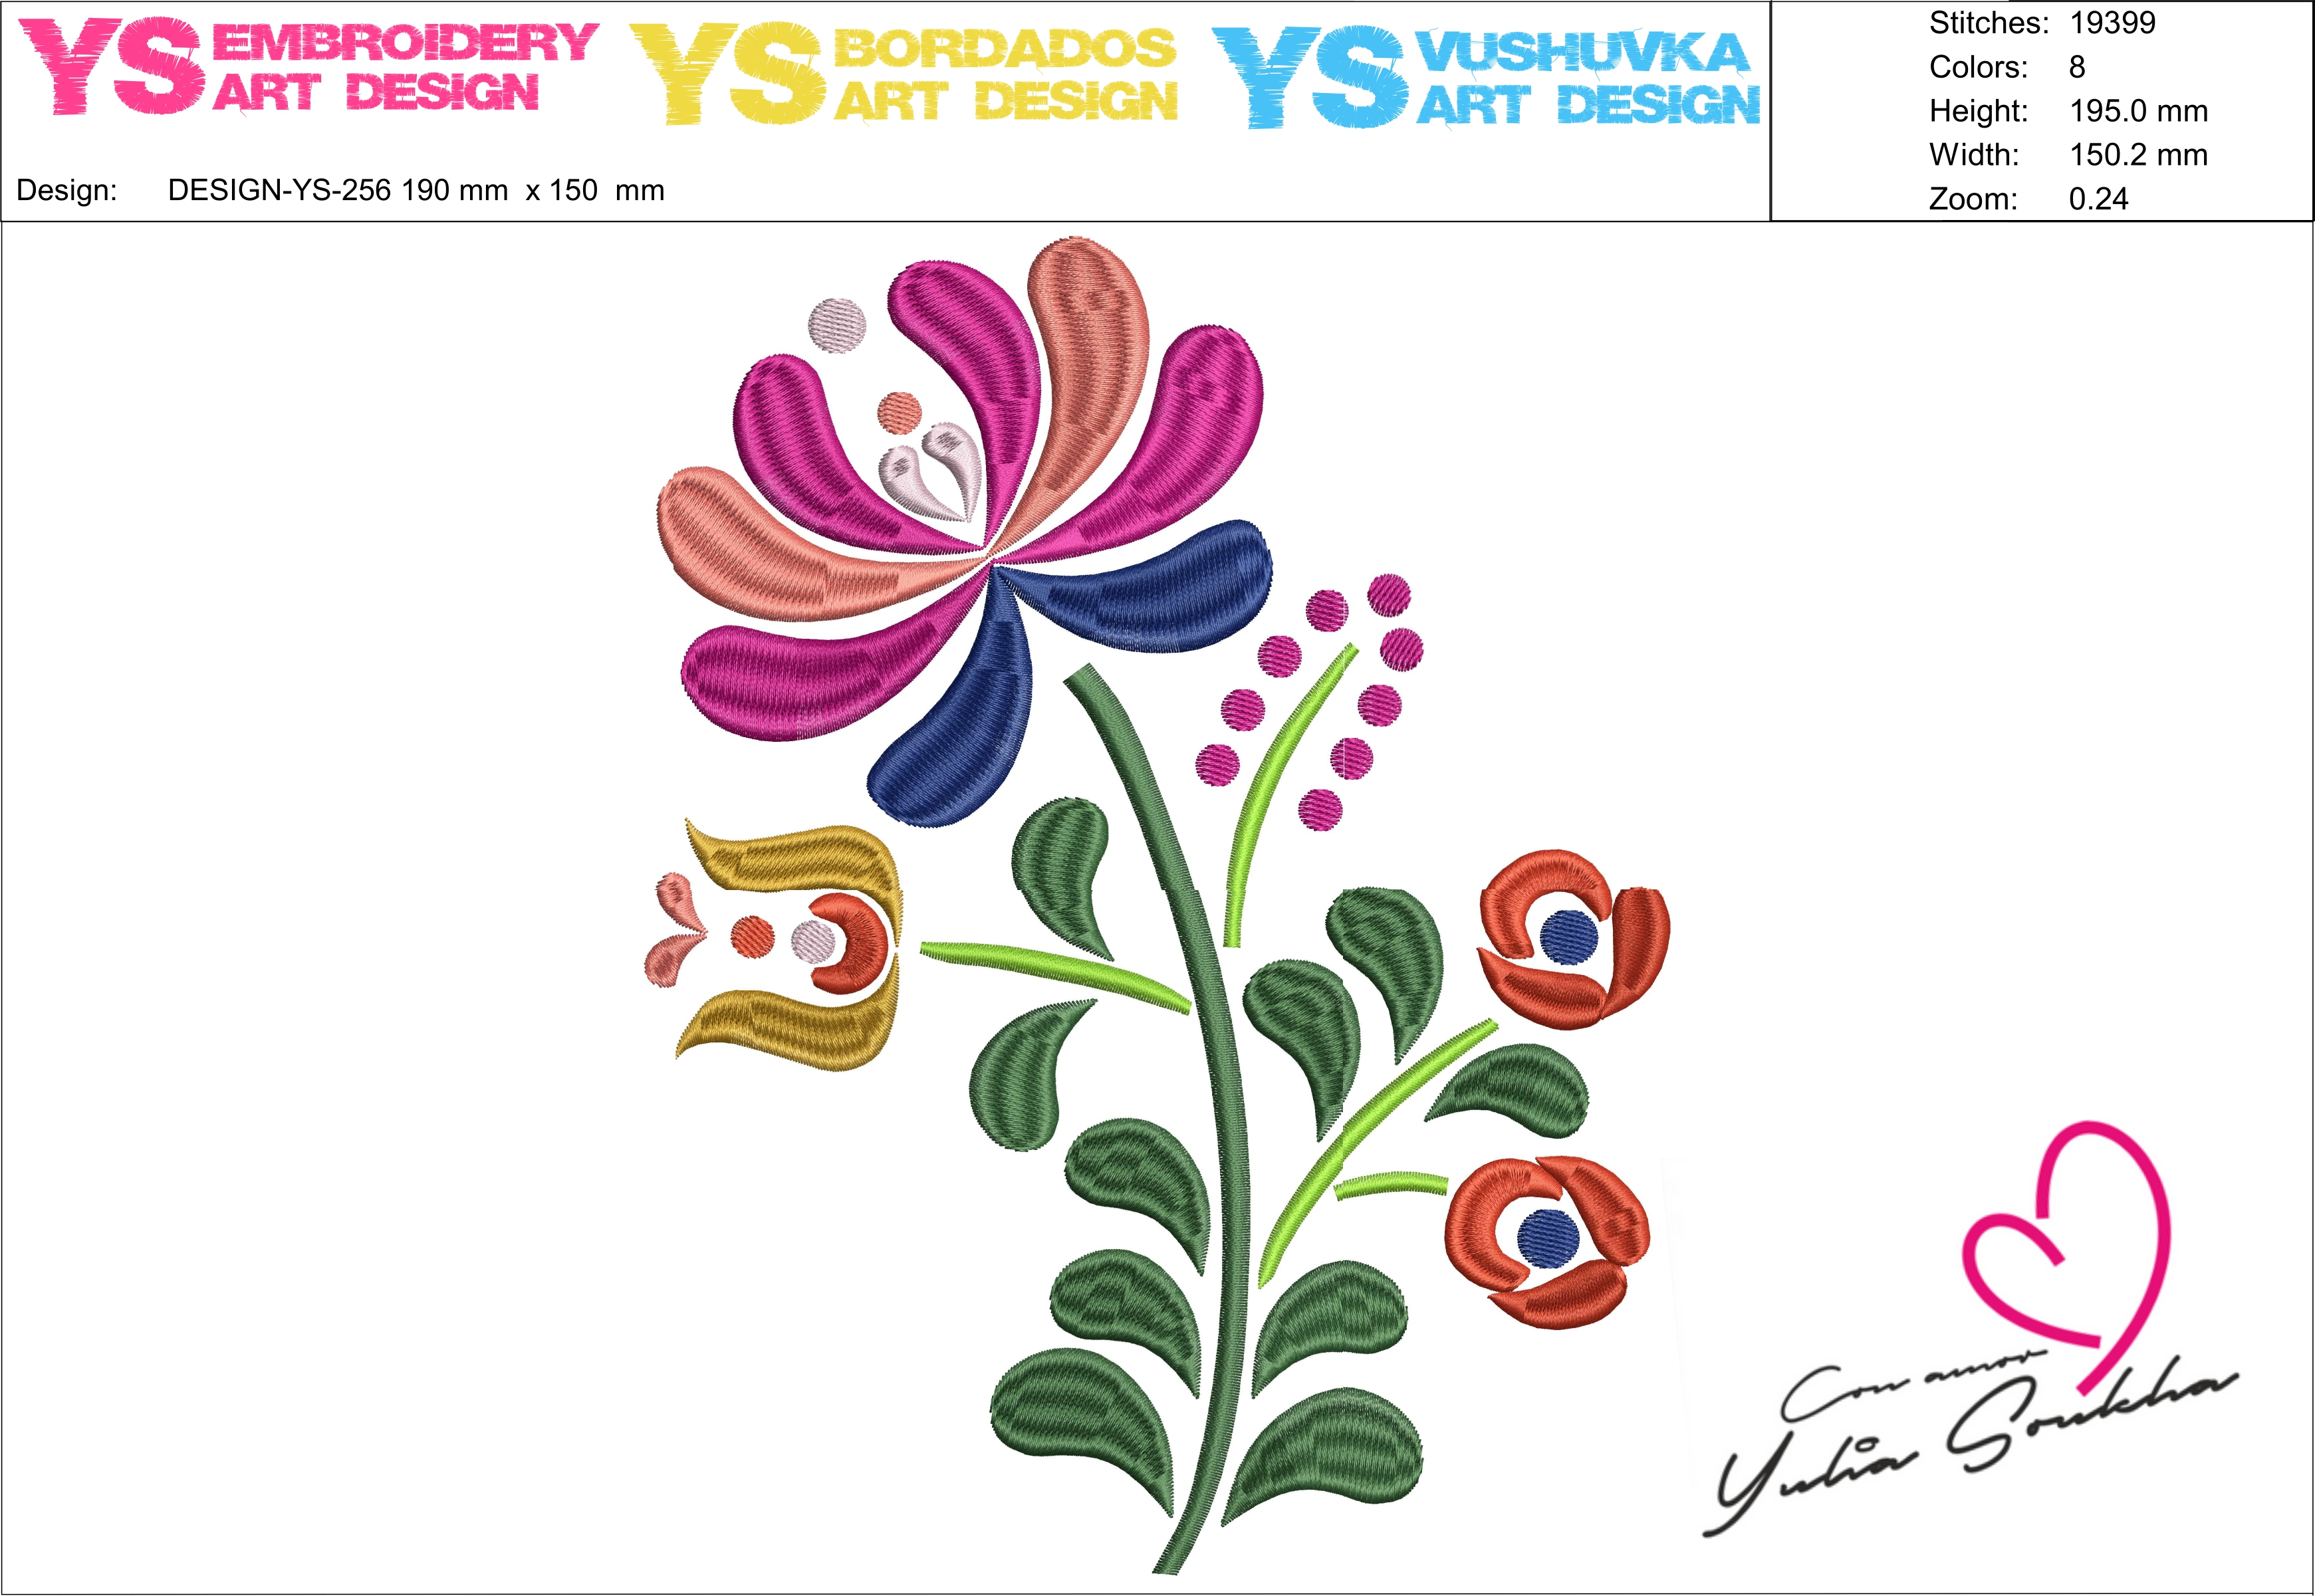 Flower JAZ embroidery design, 195 x 150.2 mm (7.6 'x 6') embroidery matrix, different sizes embroidery design Embroidery matrix, Mexican design example image 1